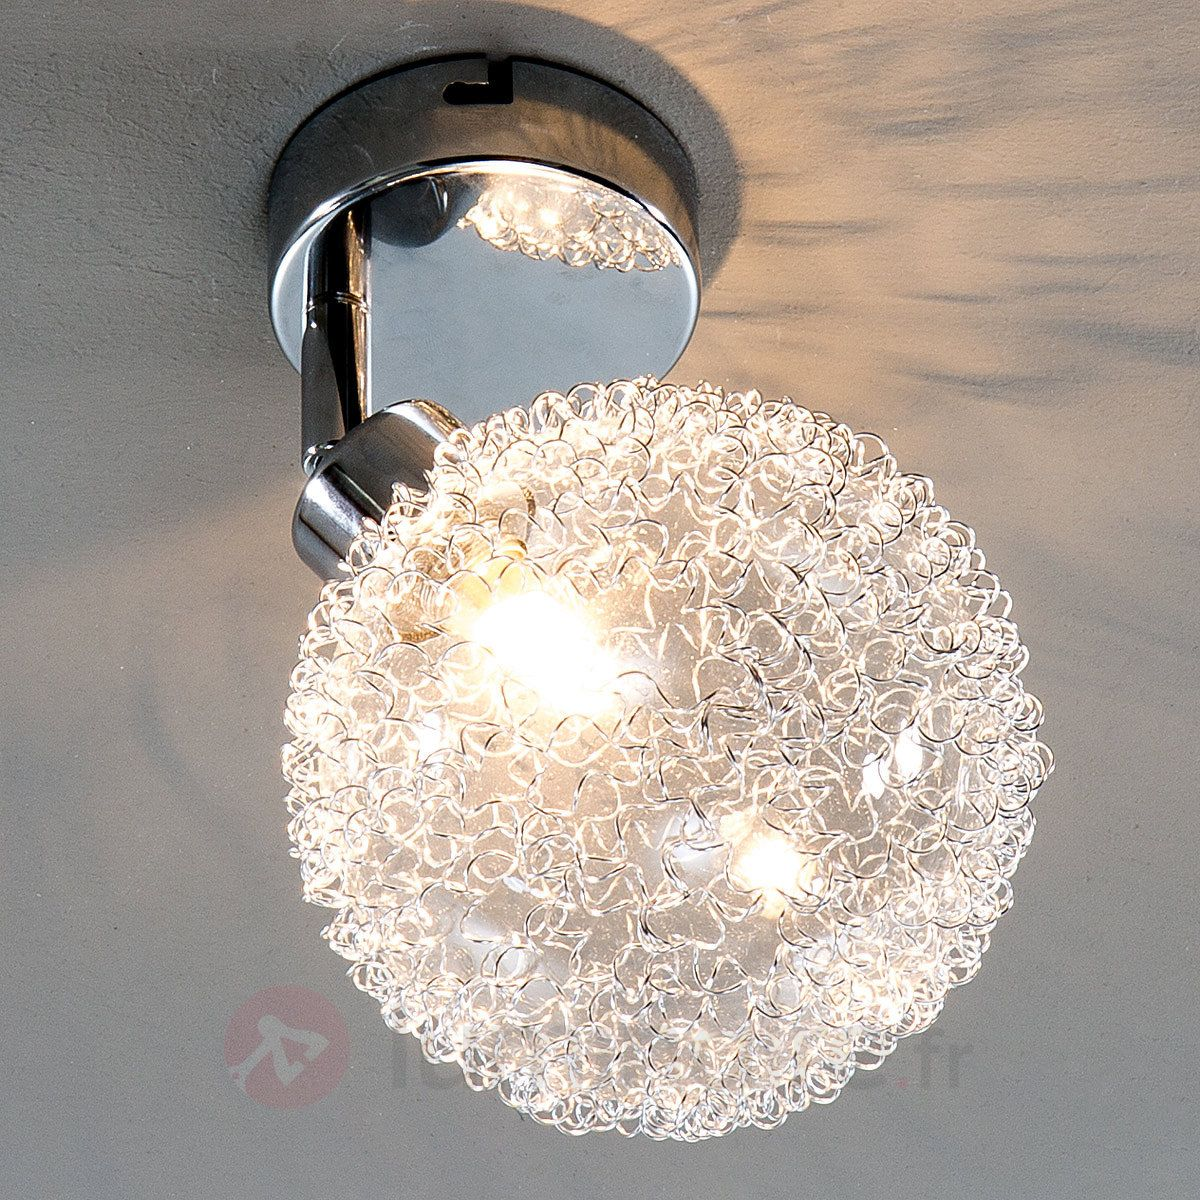 Lampe Led Wc Best Plafonnier Ramon Lampes Rfrence Collection De Lampes